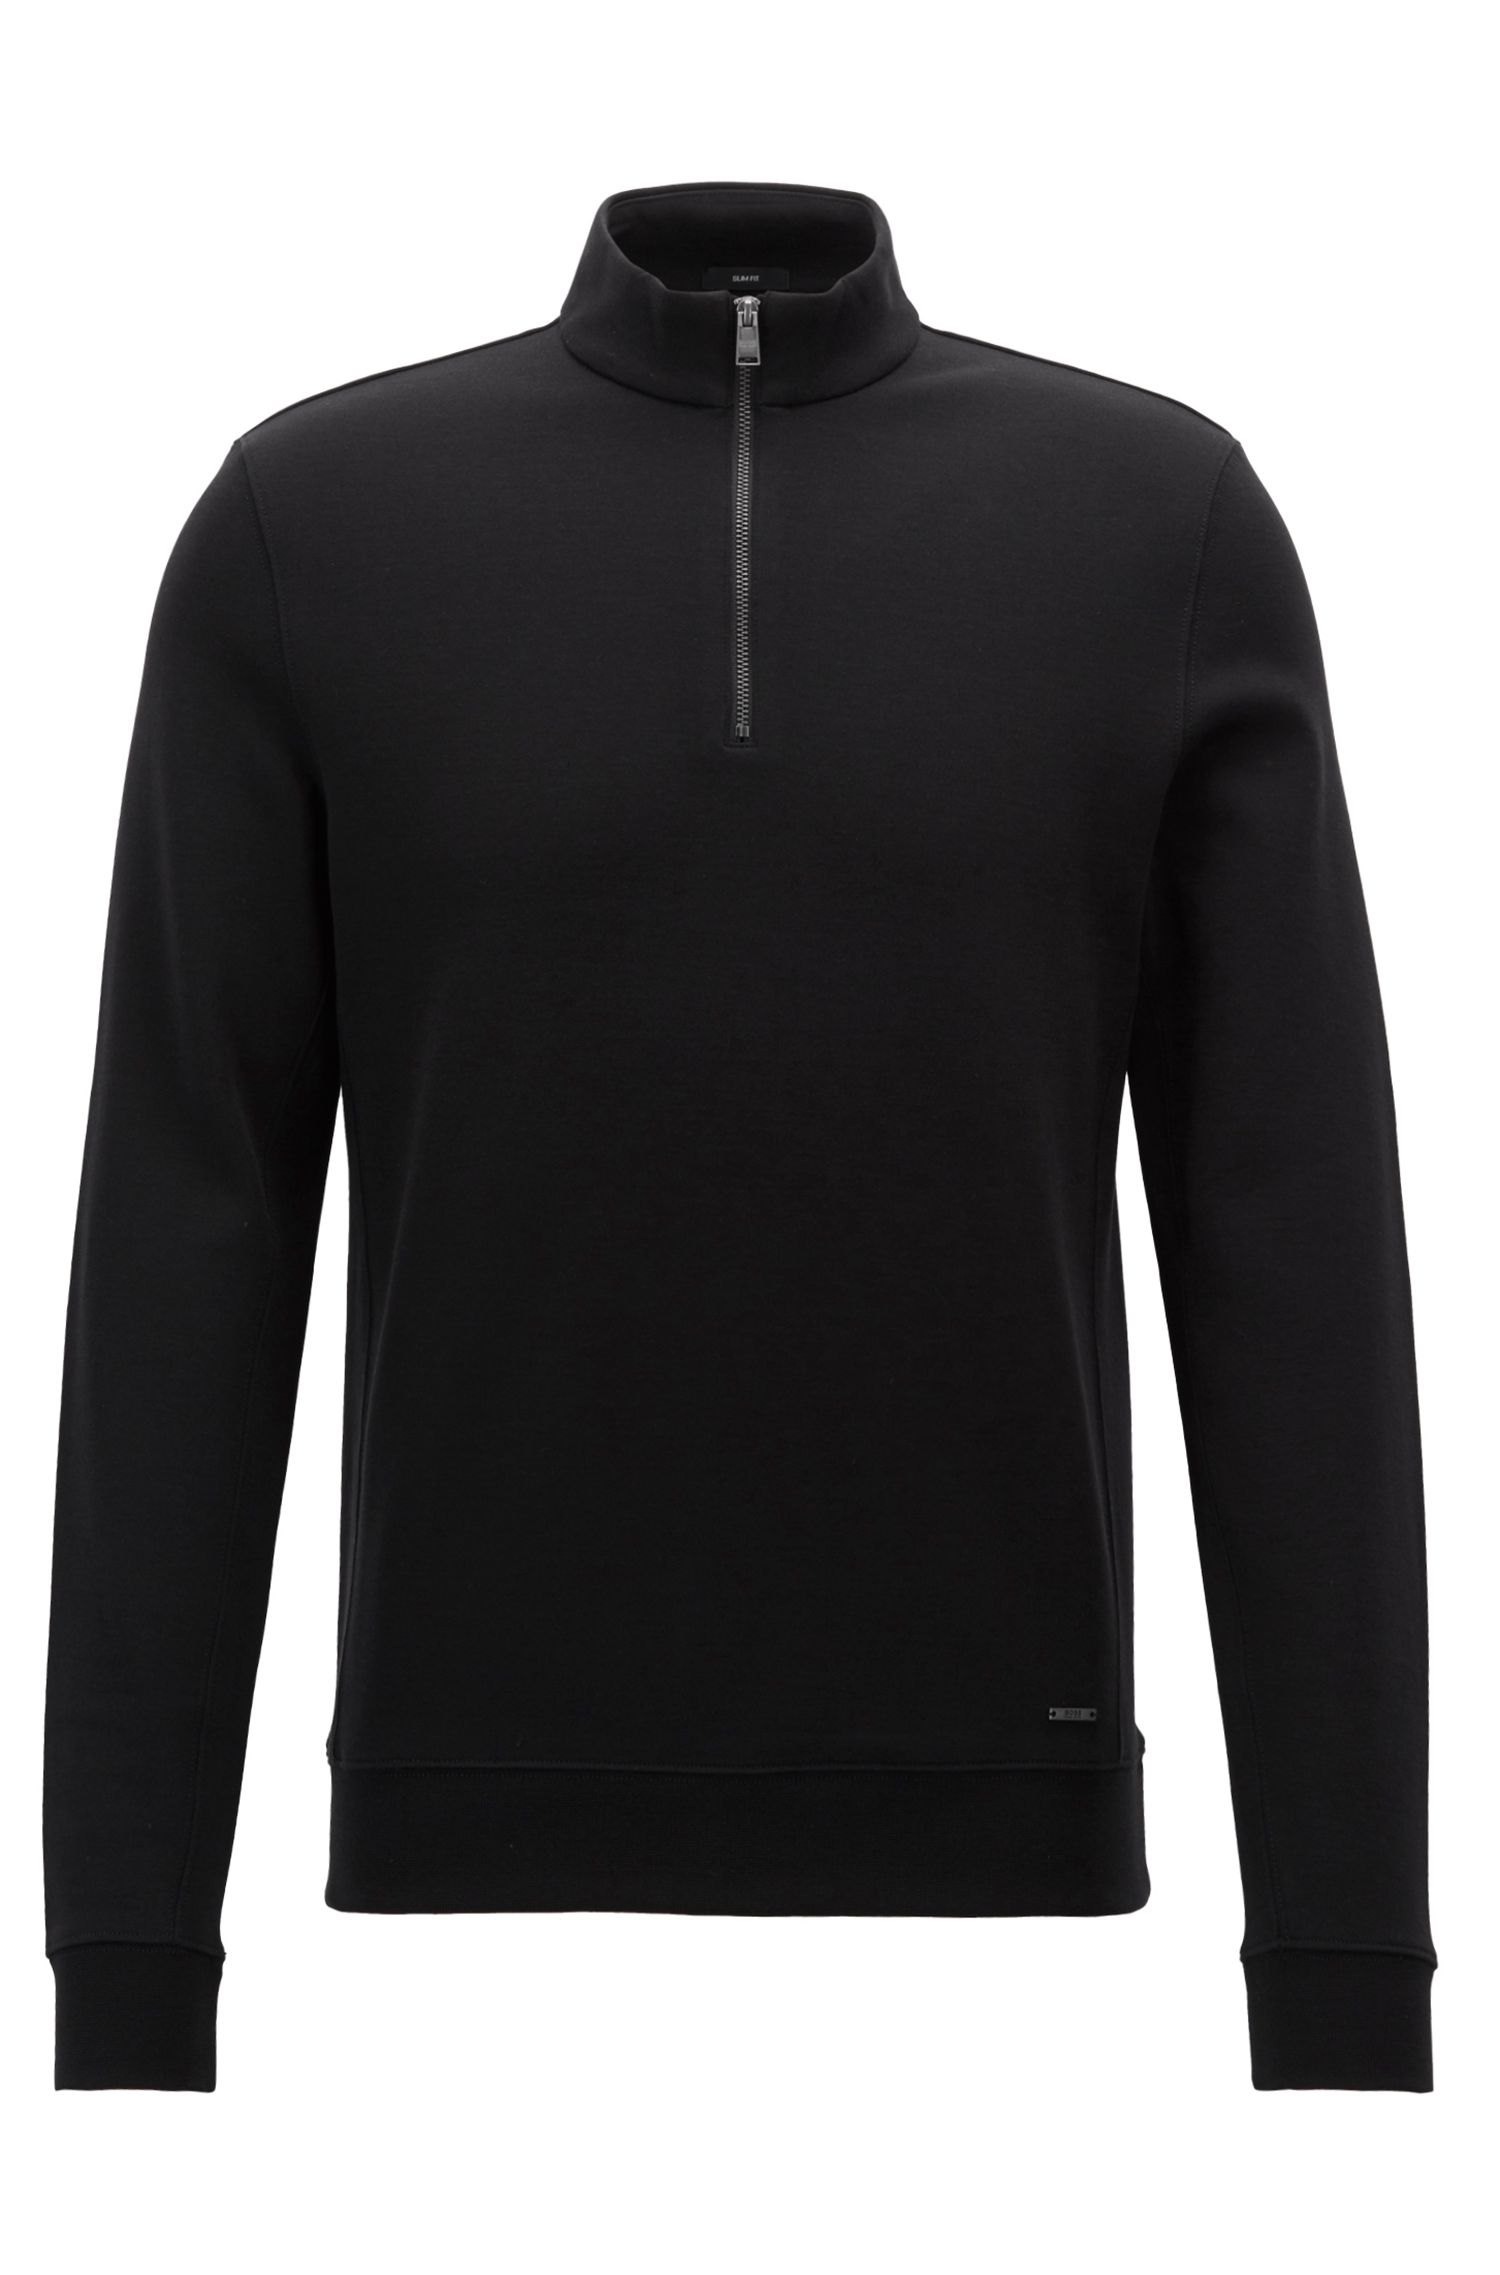 Sweat Slim Fit à col zippé en coton mélangé, Noir